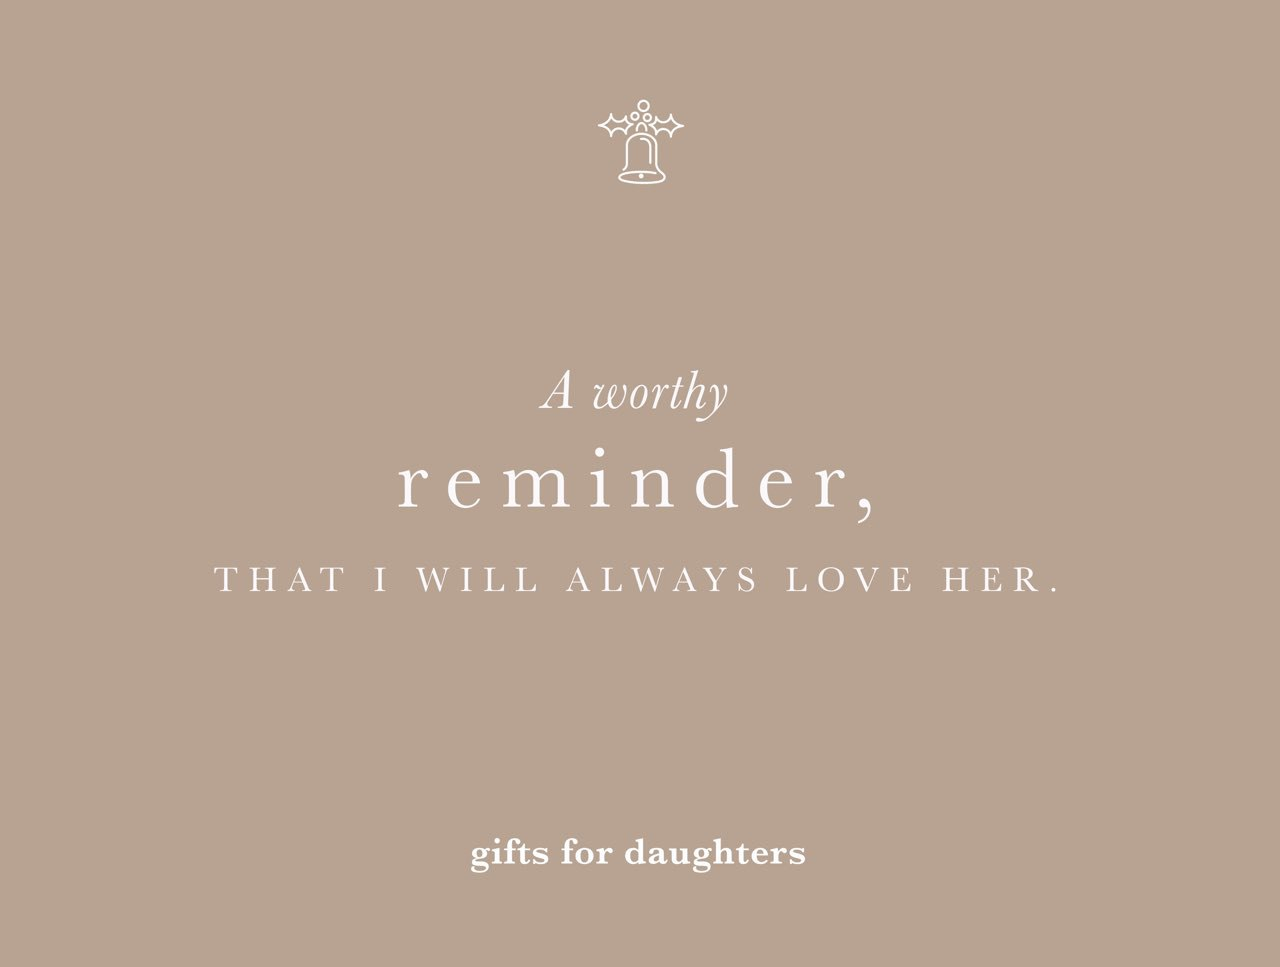 For daughters